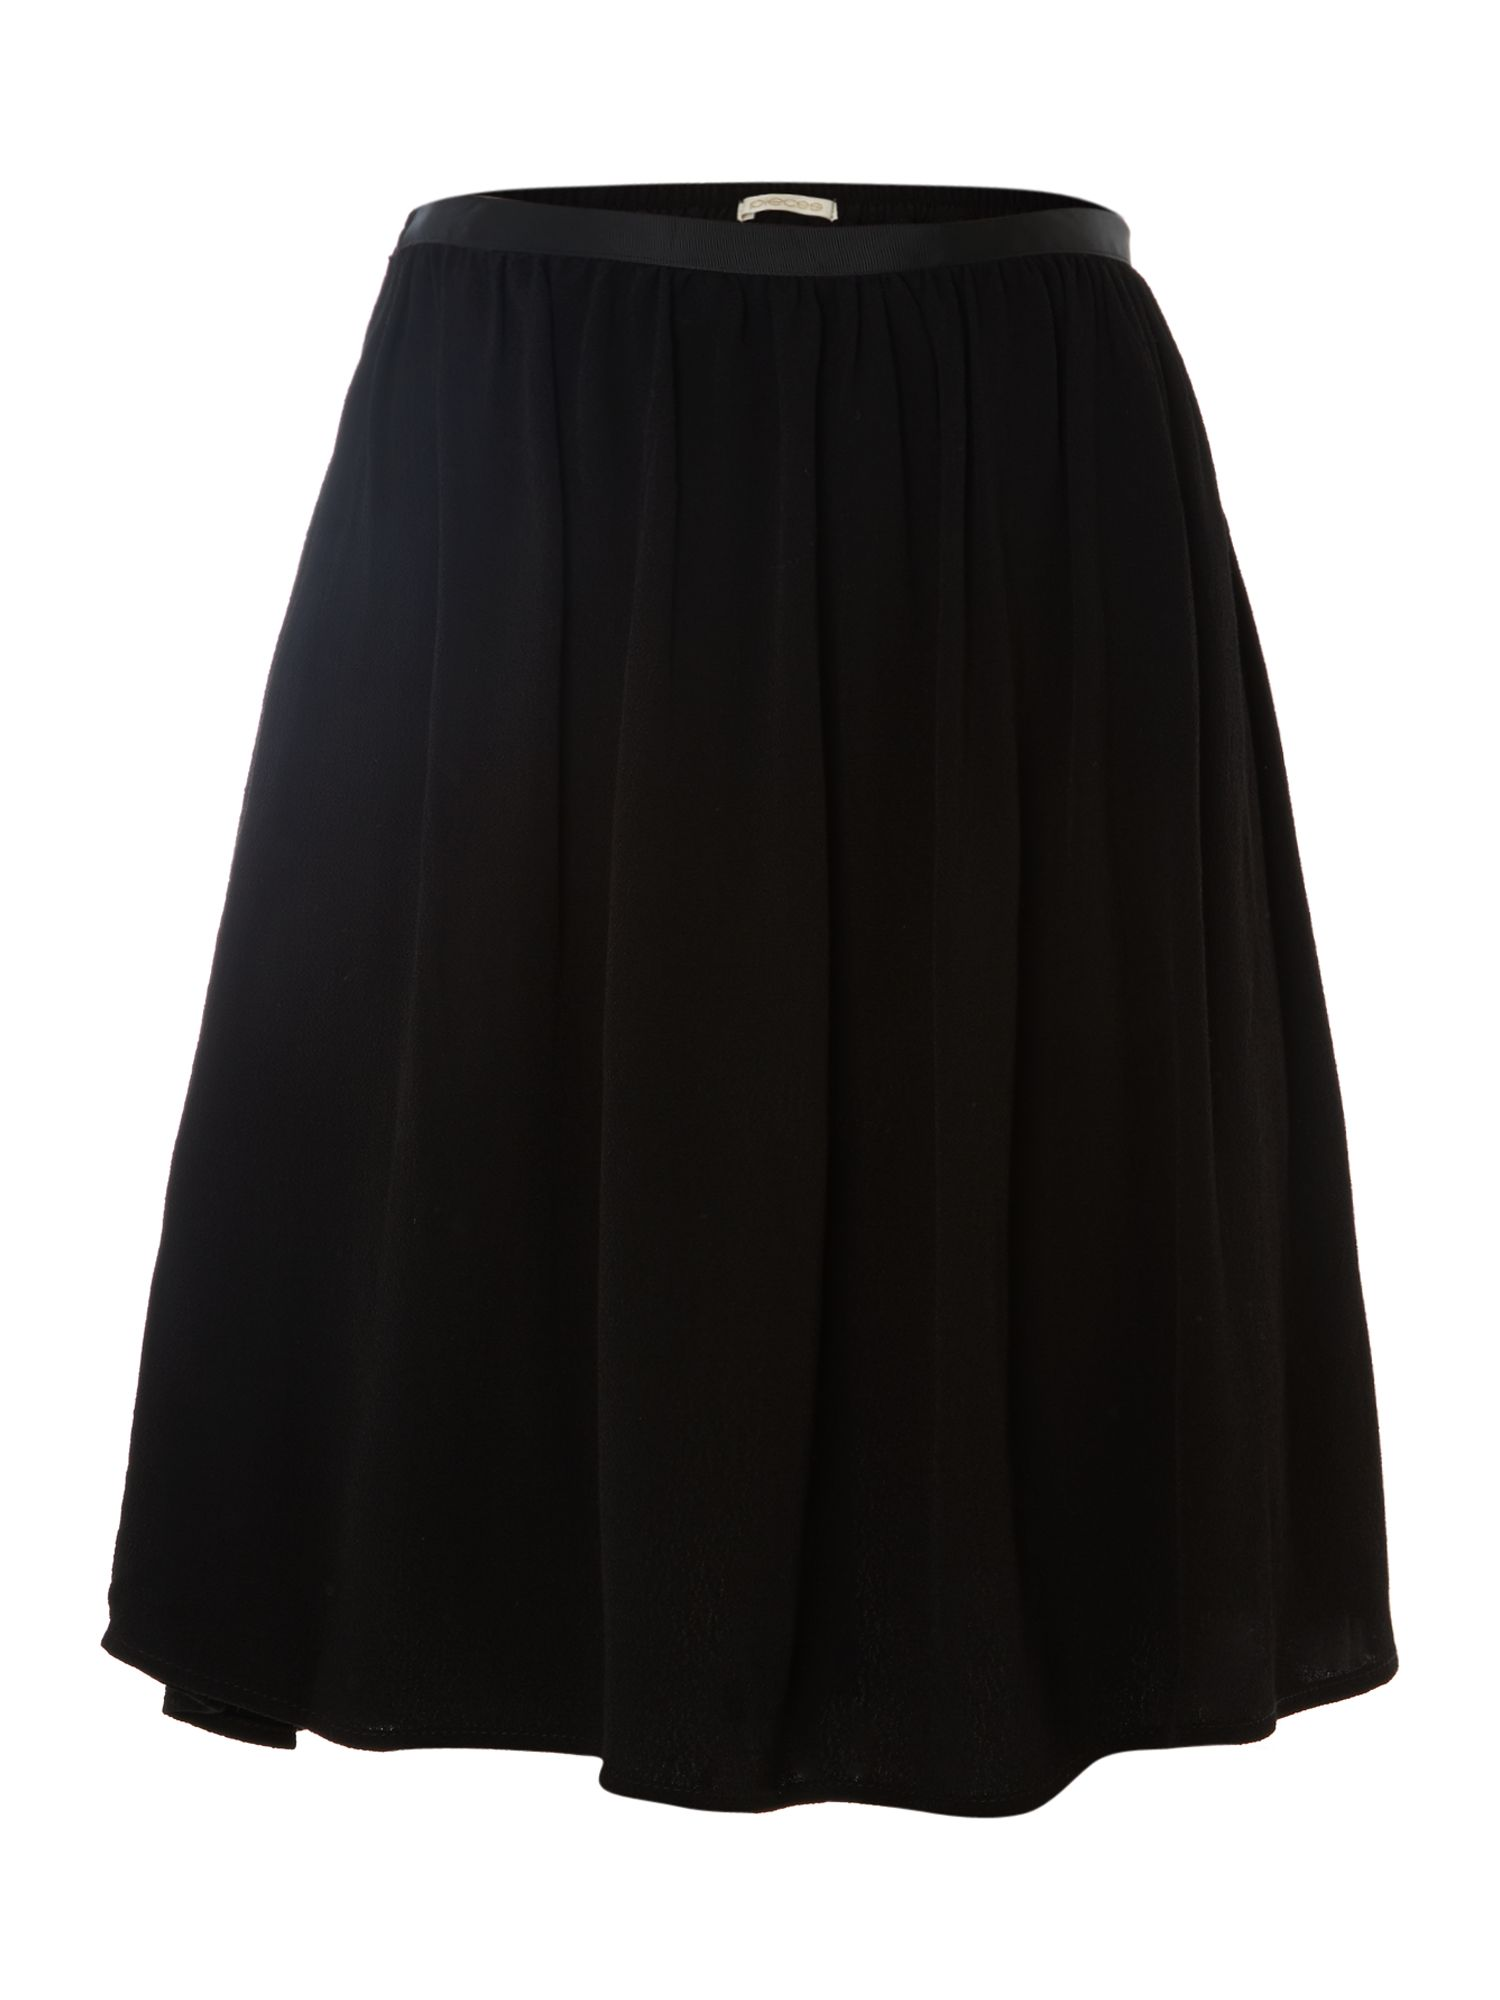 Plain skater mini skirt